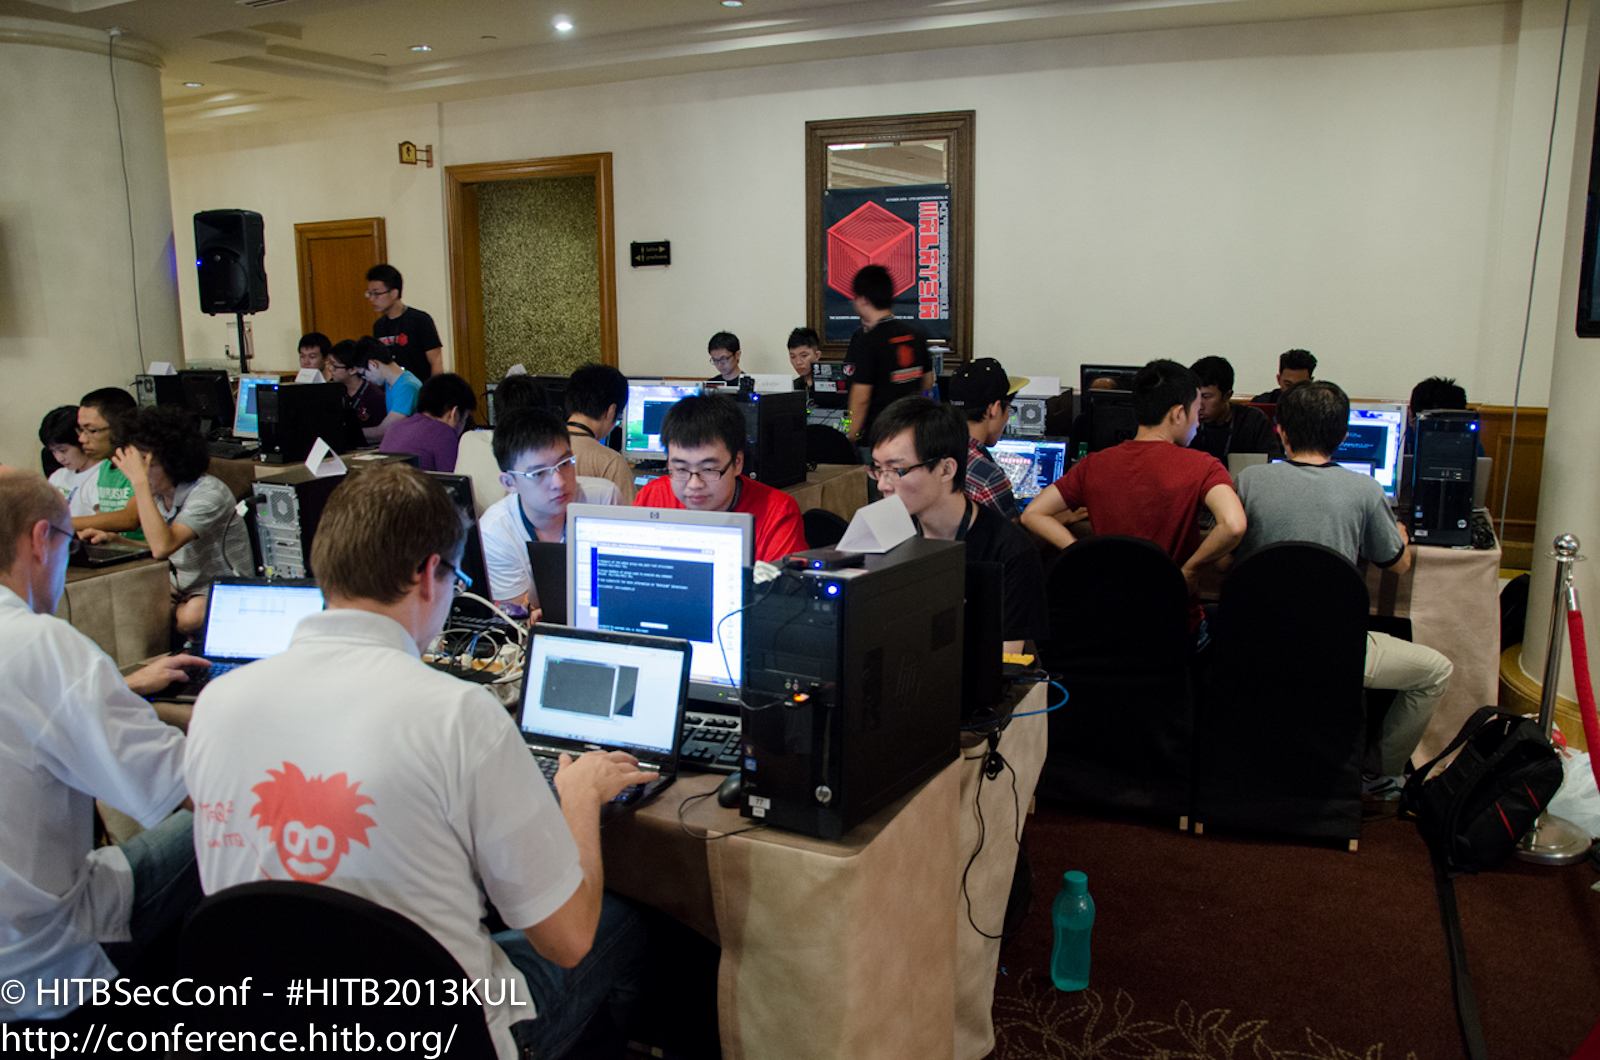 CTF underway - Team Dutch Orange Glasses from NL in the forefront